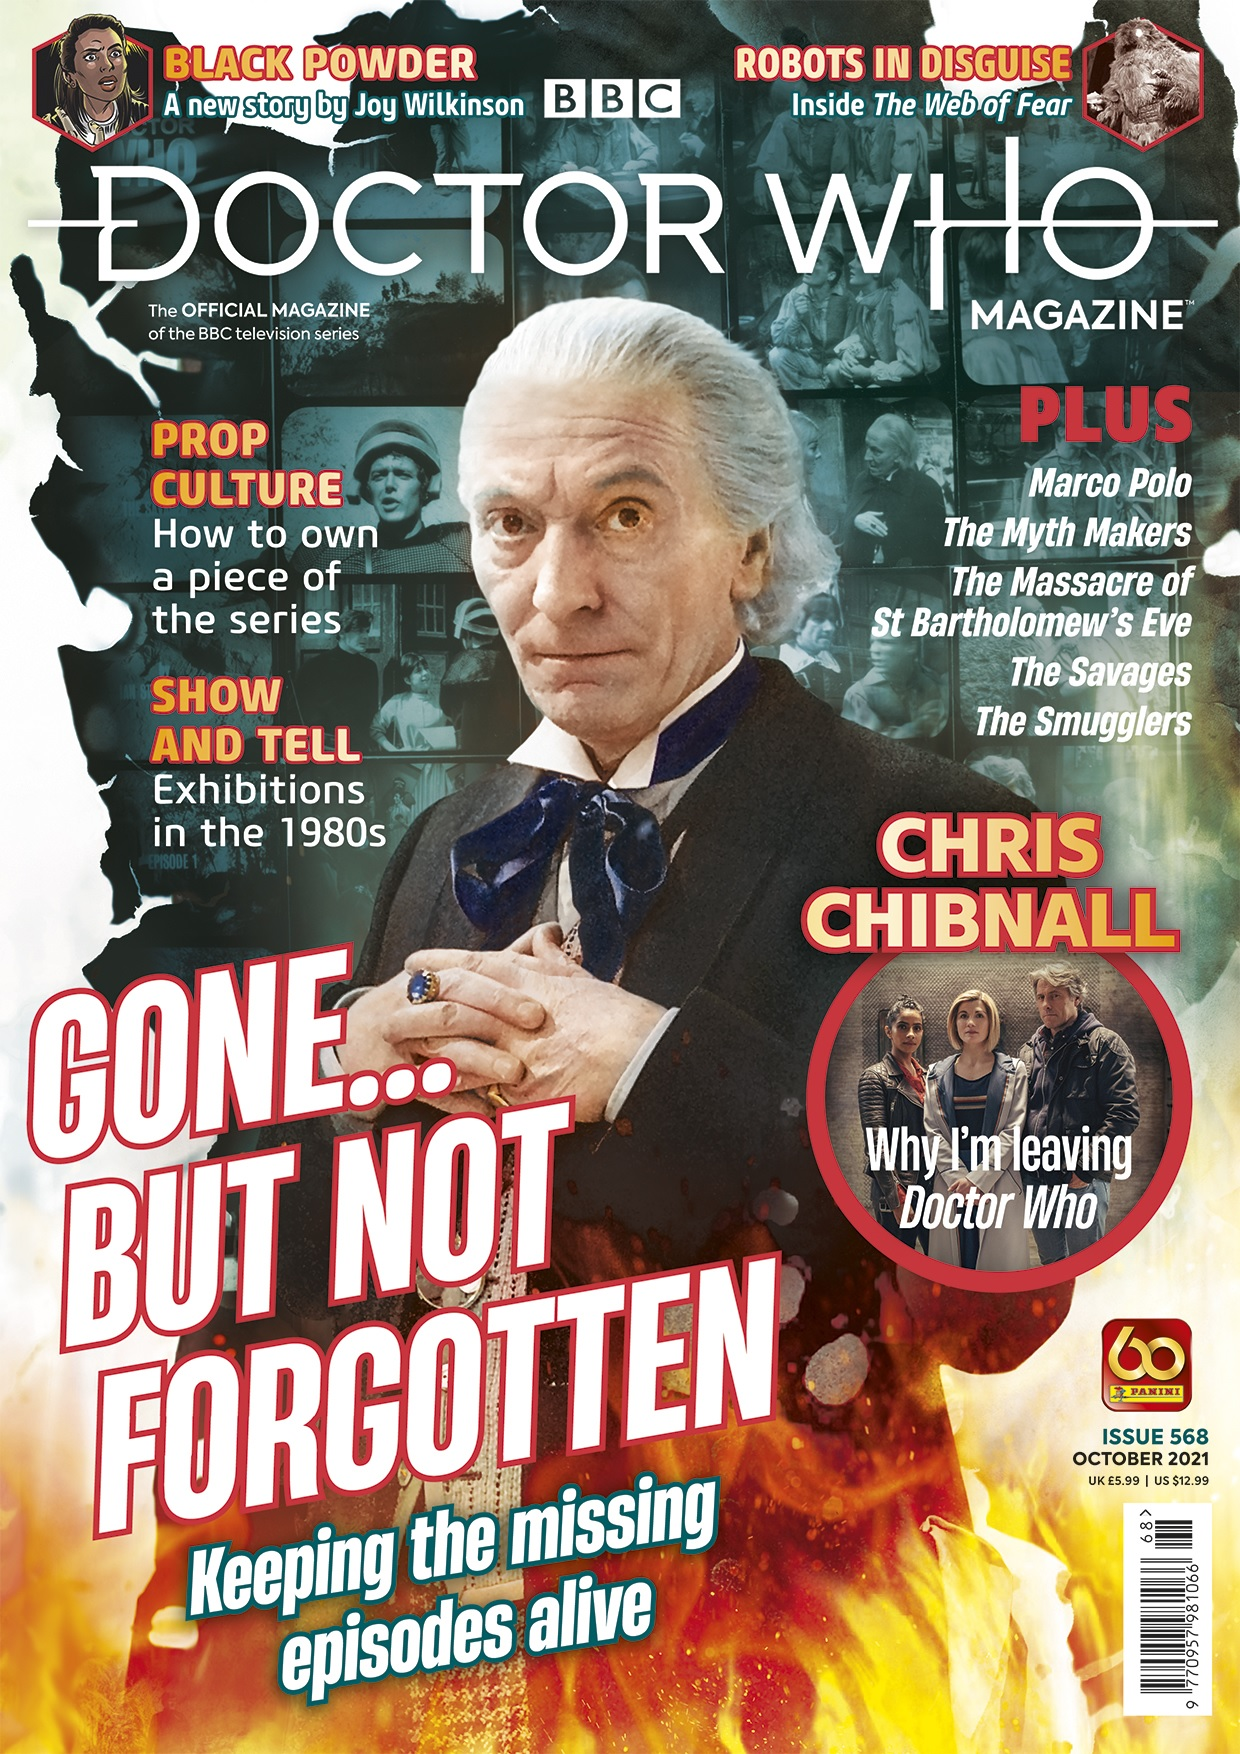 Out Now: Doctor Who Magazine #568 Covers Doctor Who's Missing Episodes